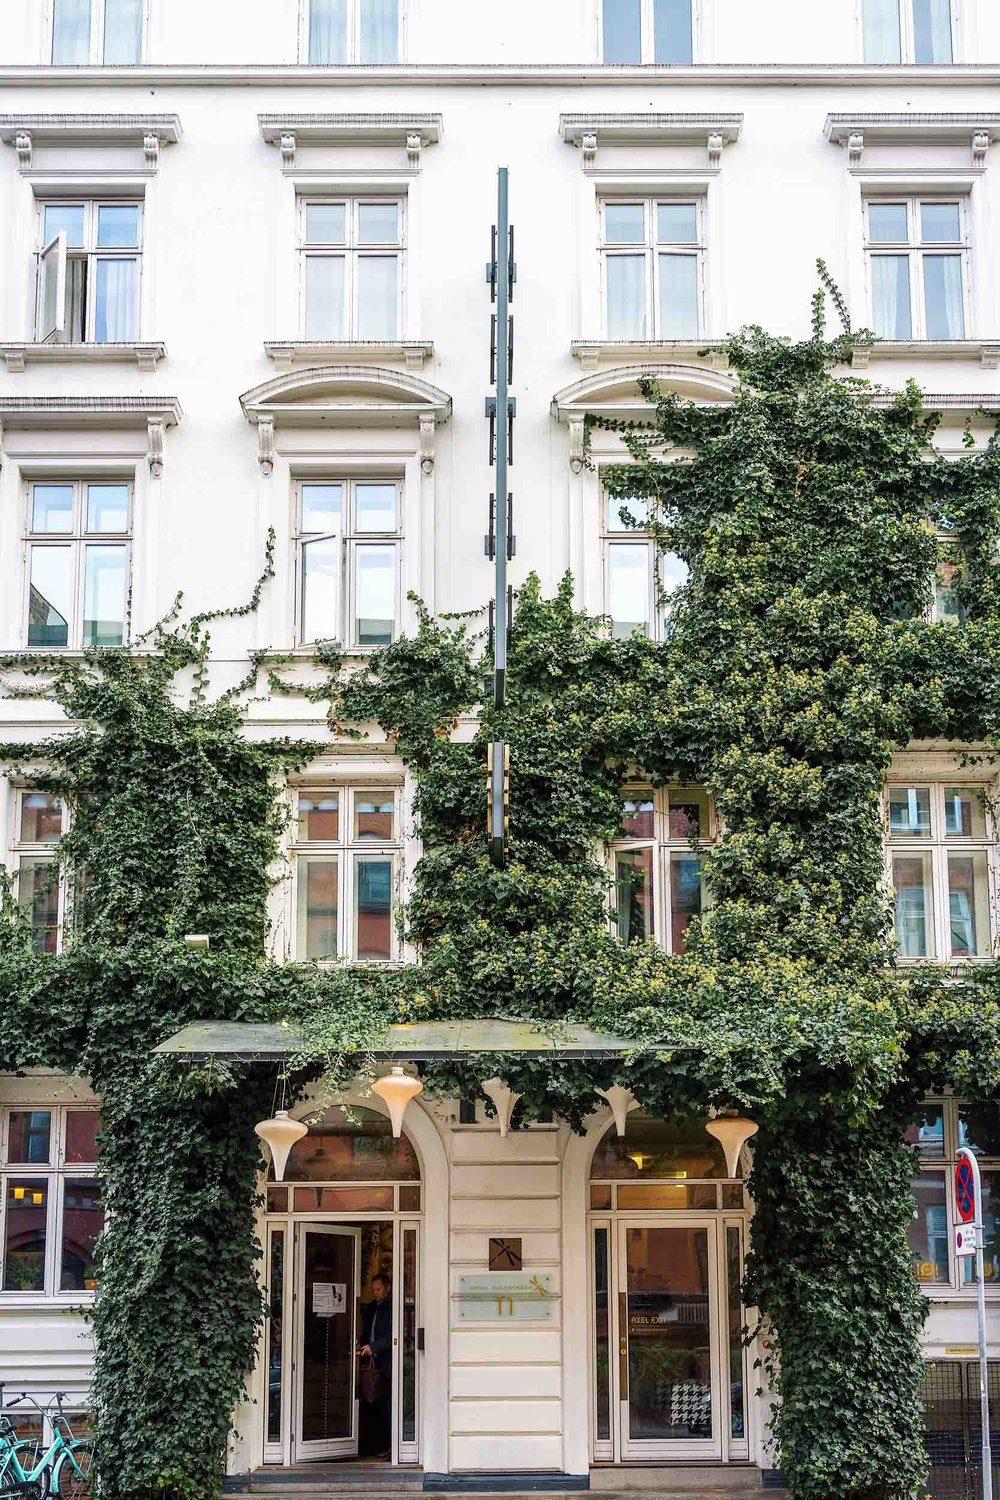 The ivy-covered exterior at Axel Guldsmeden in Copenhagen